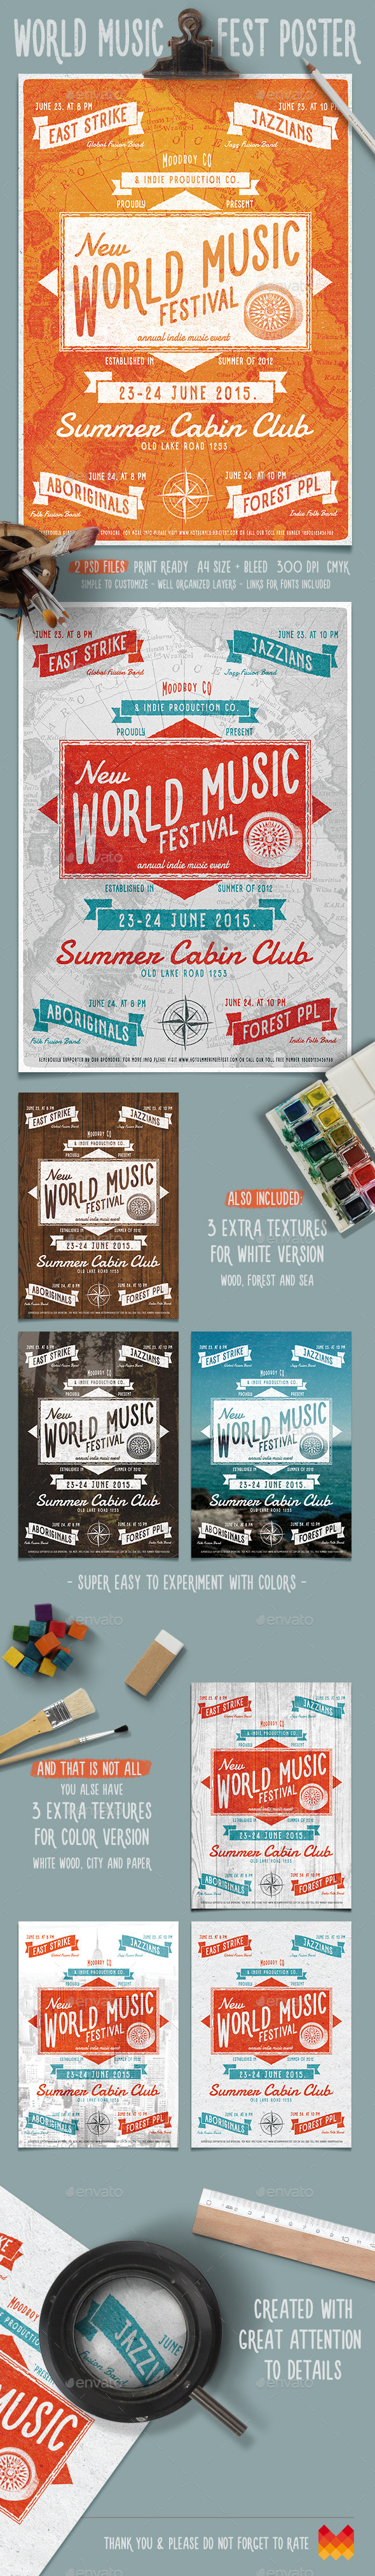 World Music Fest Flyer/Poster - Events Flyers